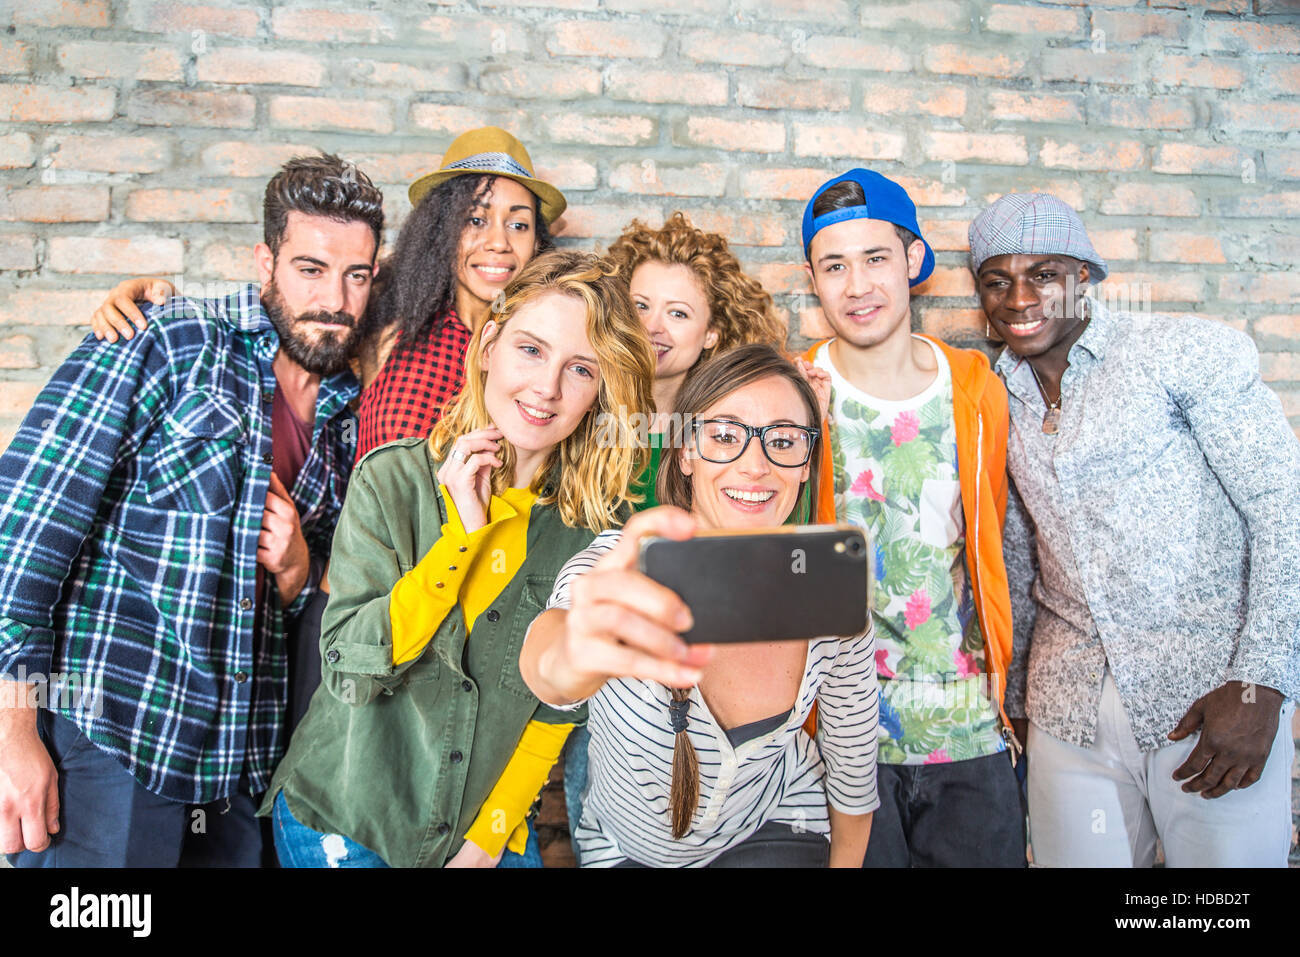 Group of people with coloroful trendy clothes bonding together and having fun - Young cheerful friends taking a - Stock Image